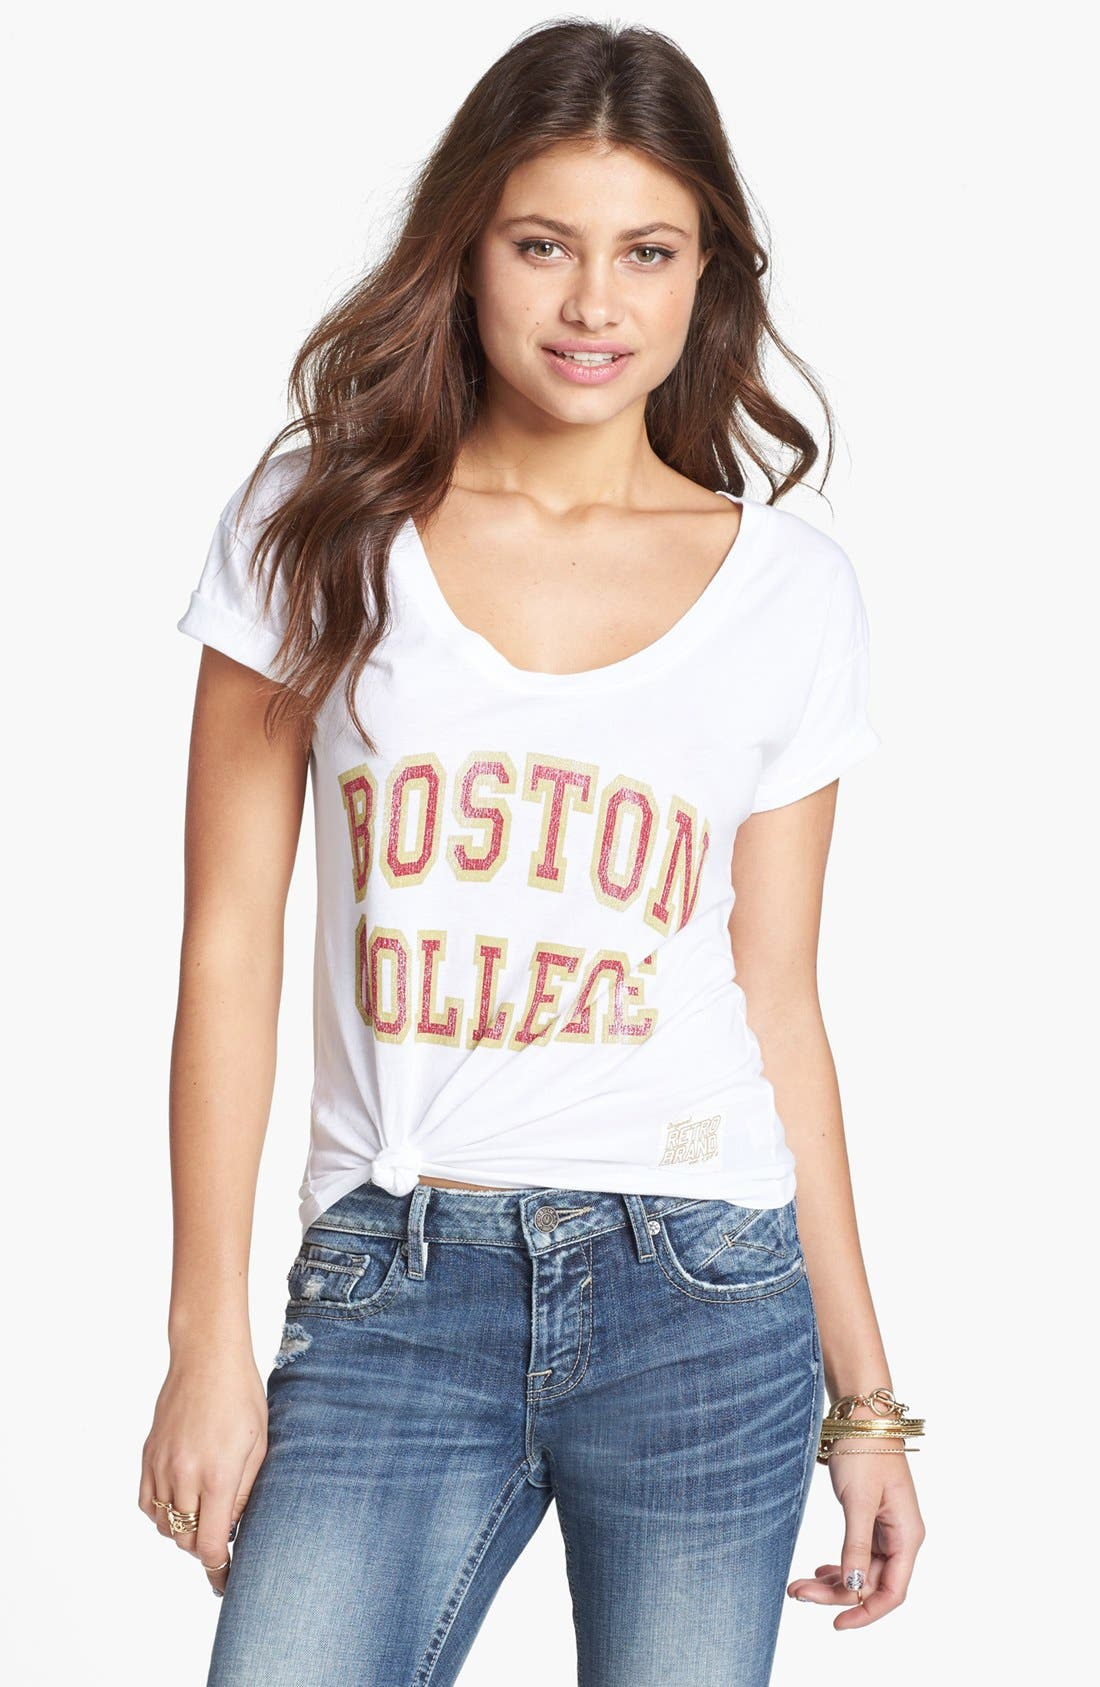 Alternate Image 1 Selected - Retro Brand 'Boston College' Graphic Tee (Juniors)